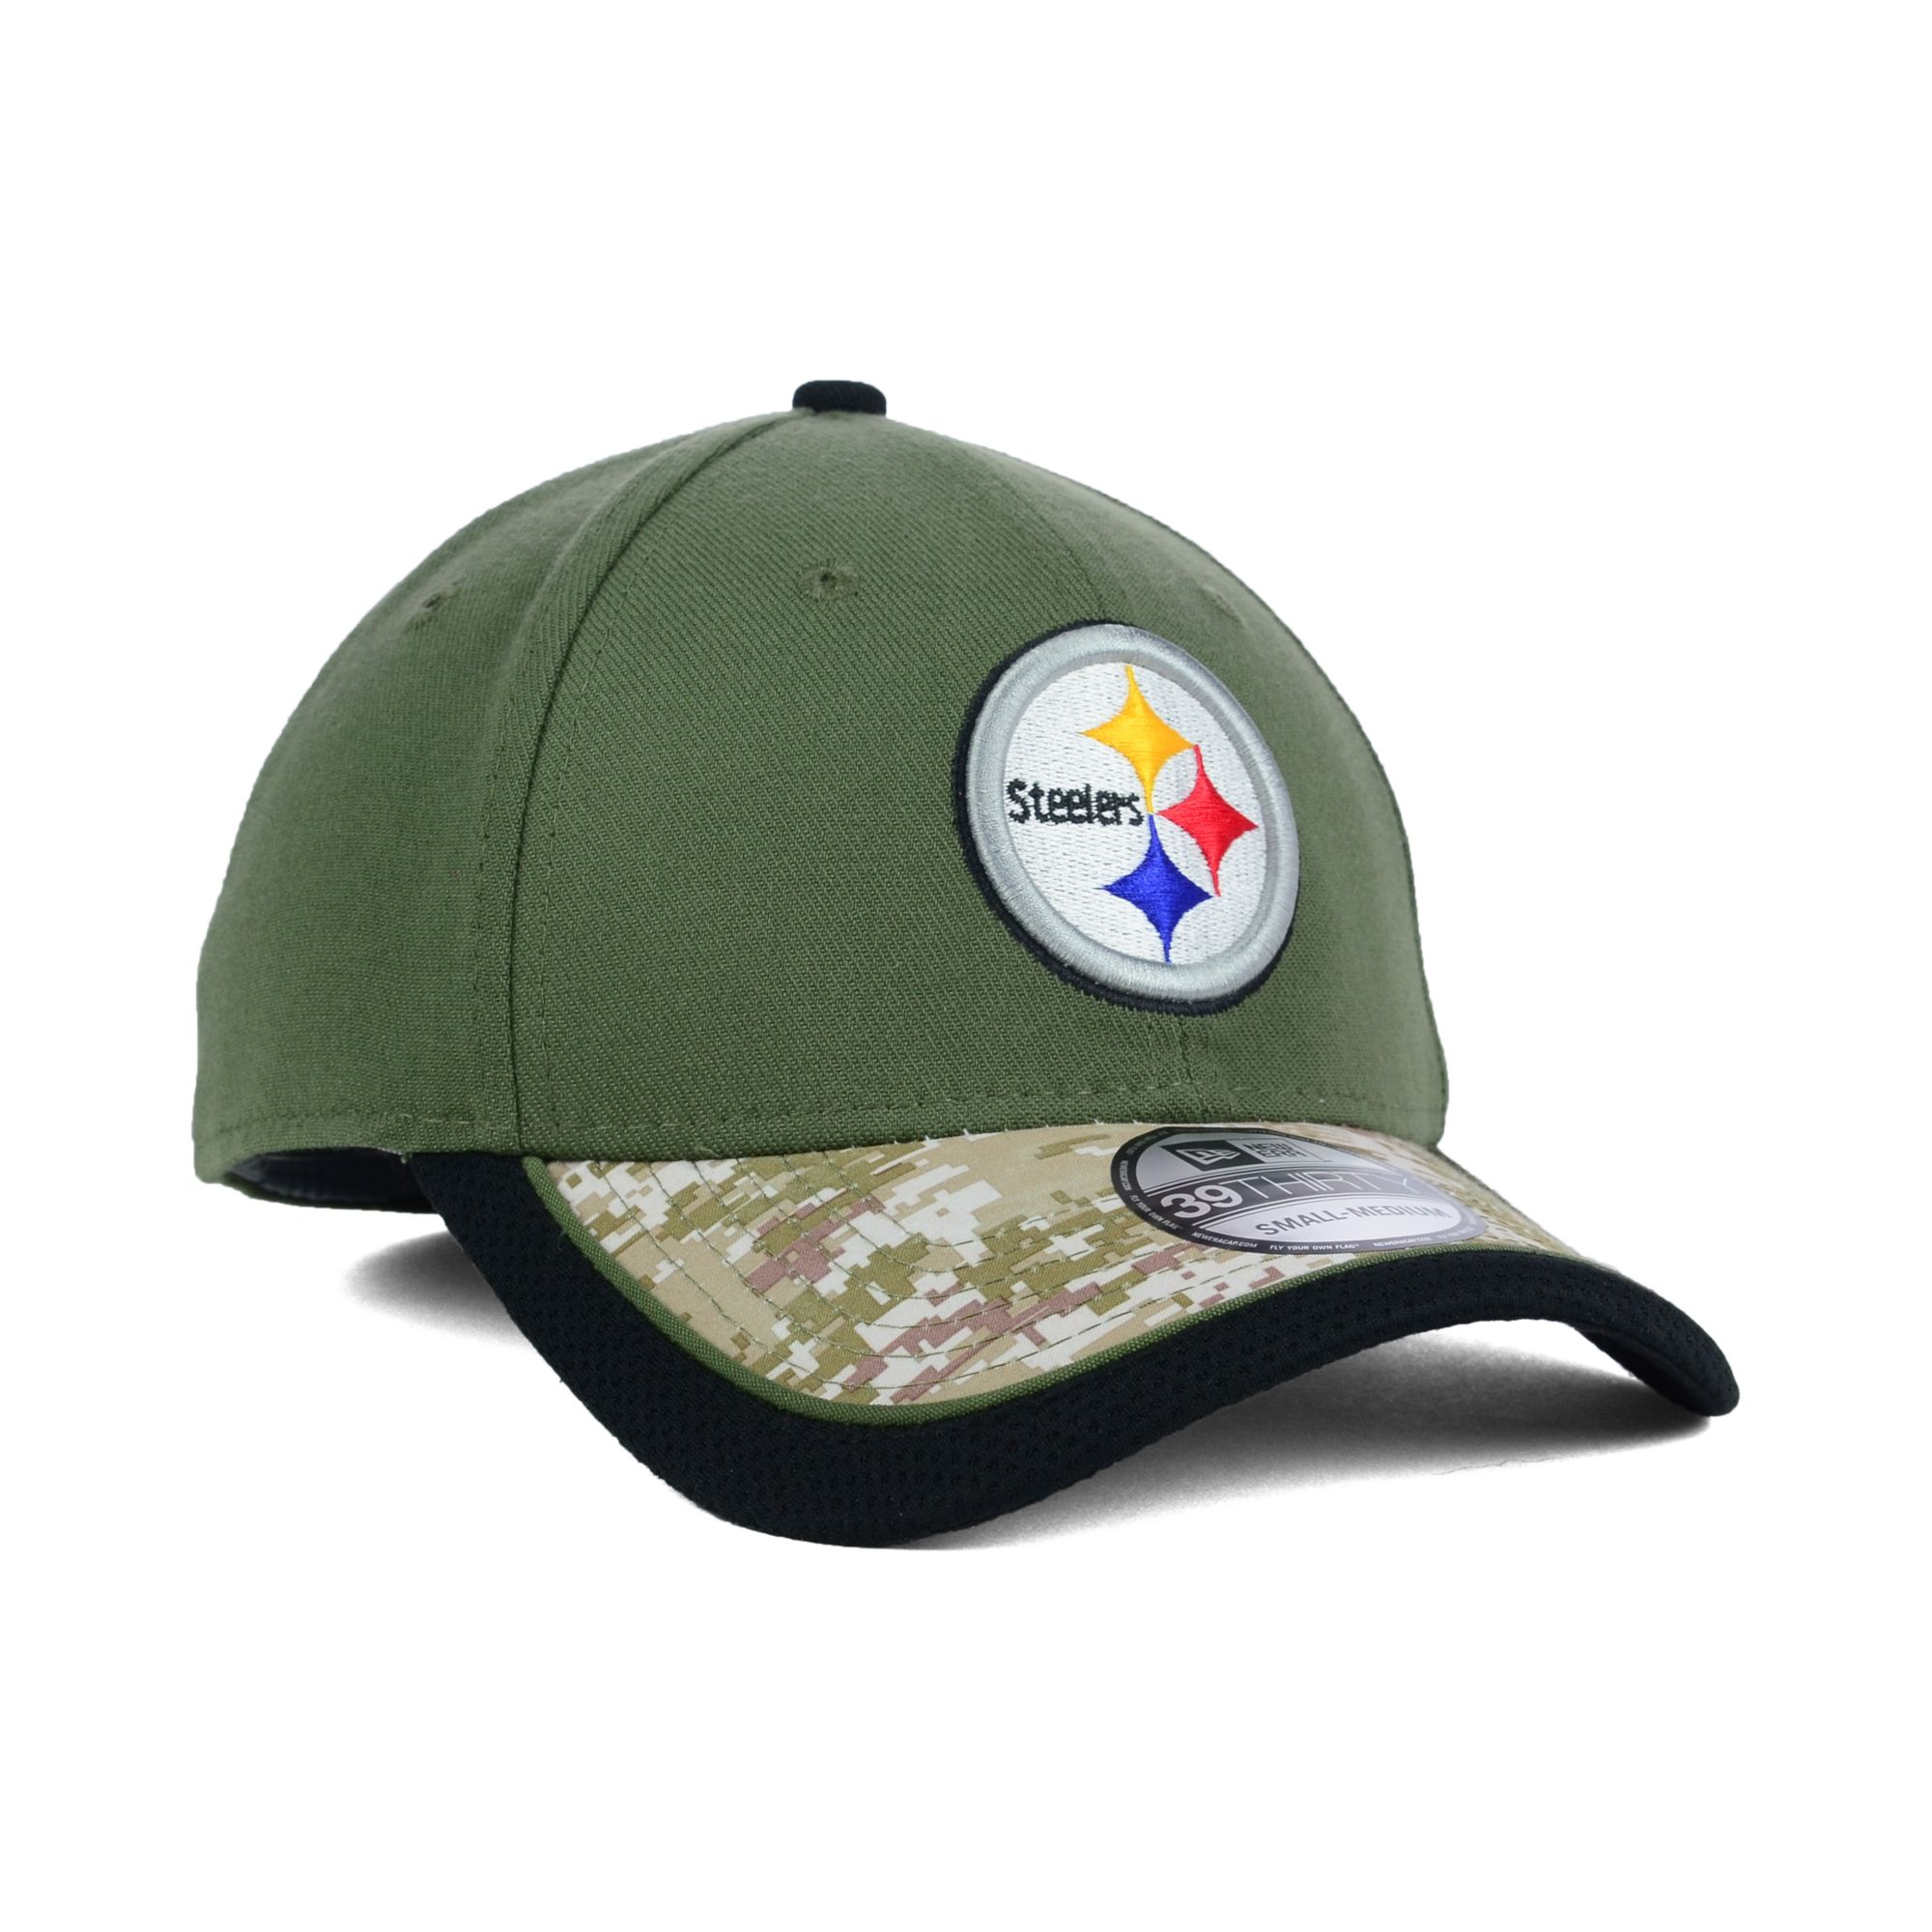 256c75b0f91 Lyst - KTZ Pittsburgh Steelers Salute To Service 39thirty Cap in ...